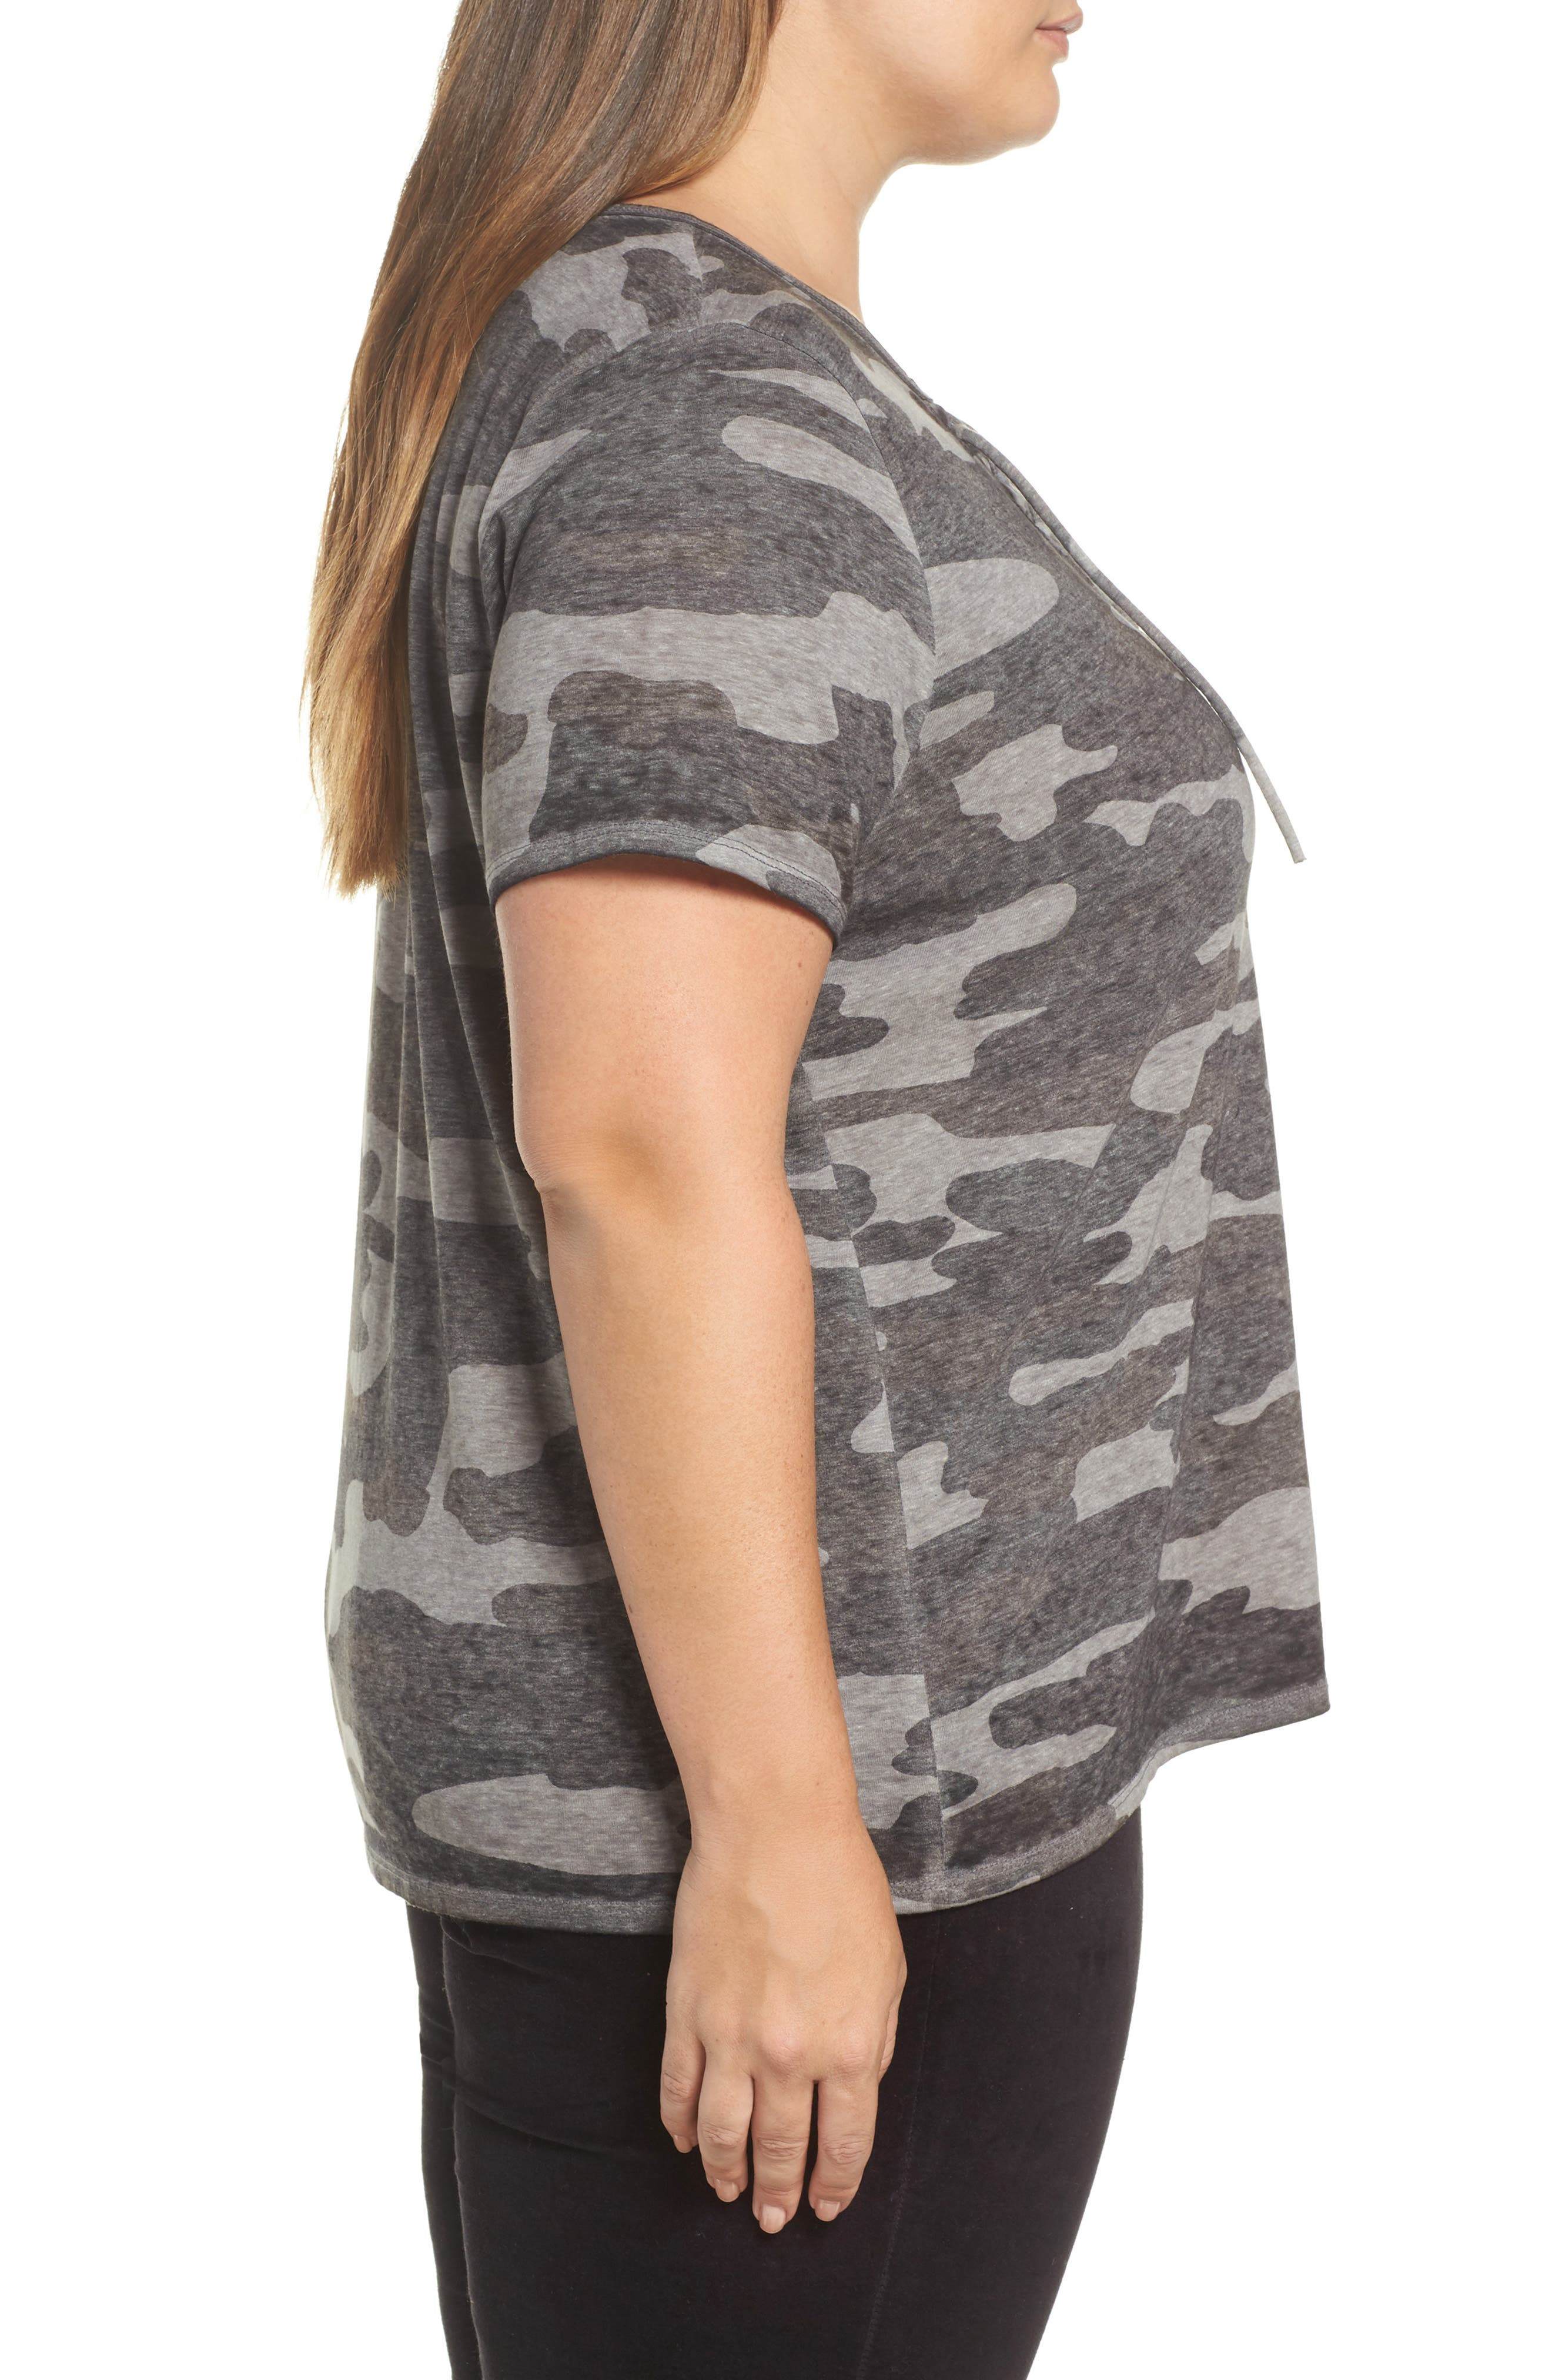 LUCKY BRAND, Lace-Up Camo Tee, Alternate thumbnail 3, color, GREY MULTI